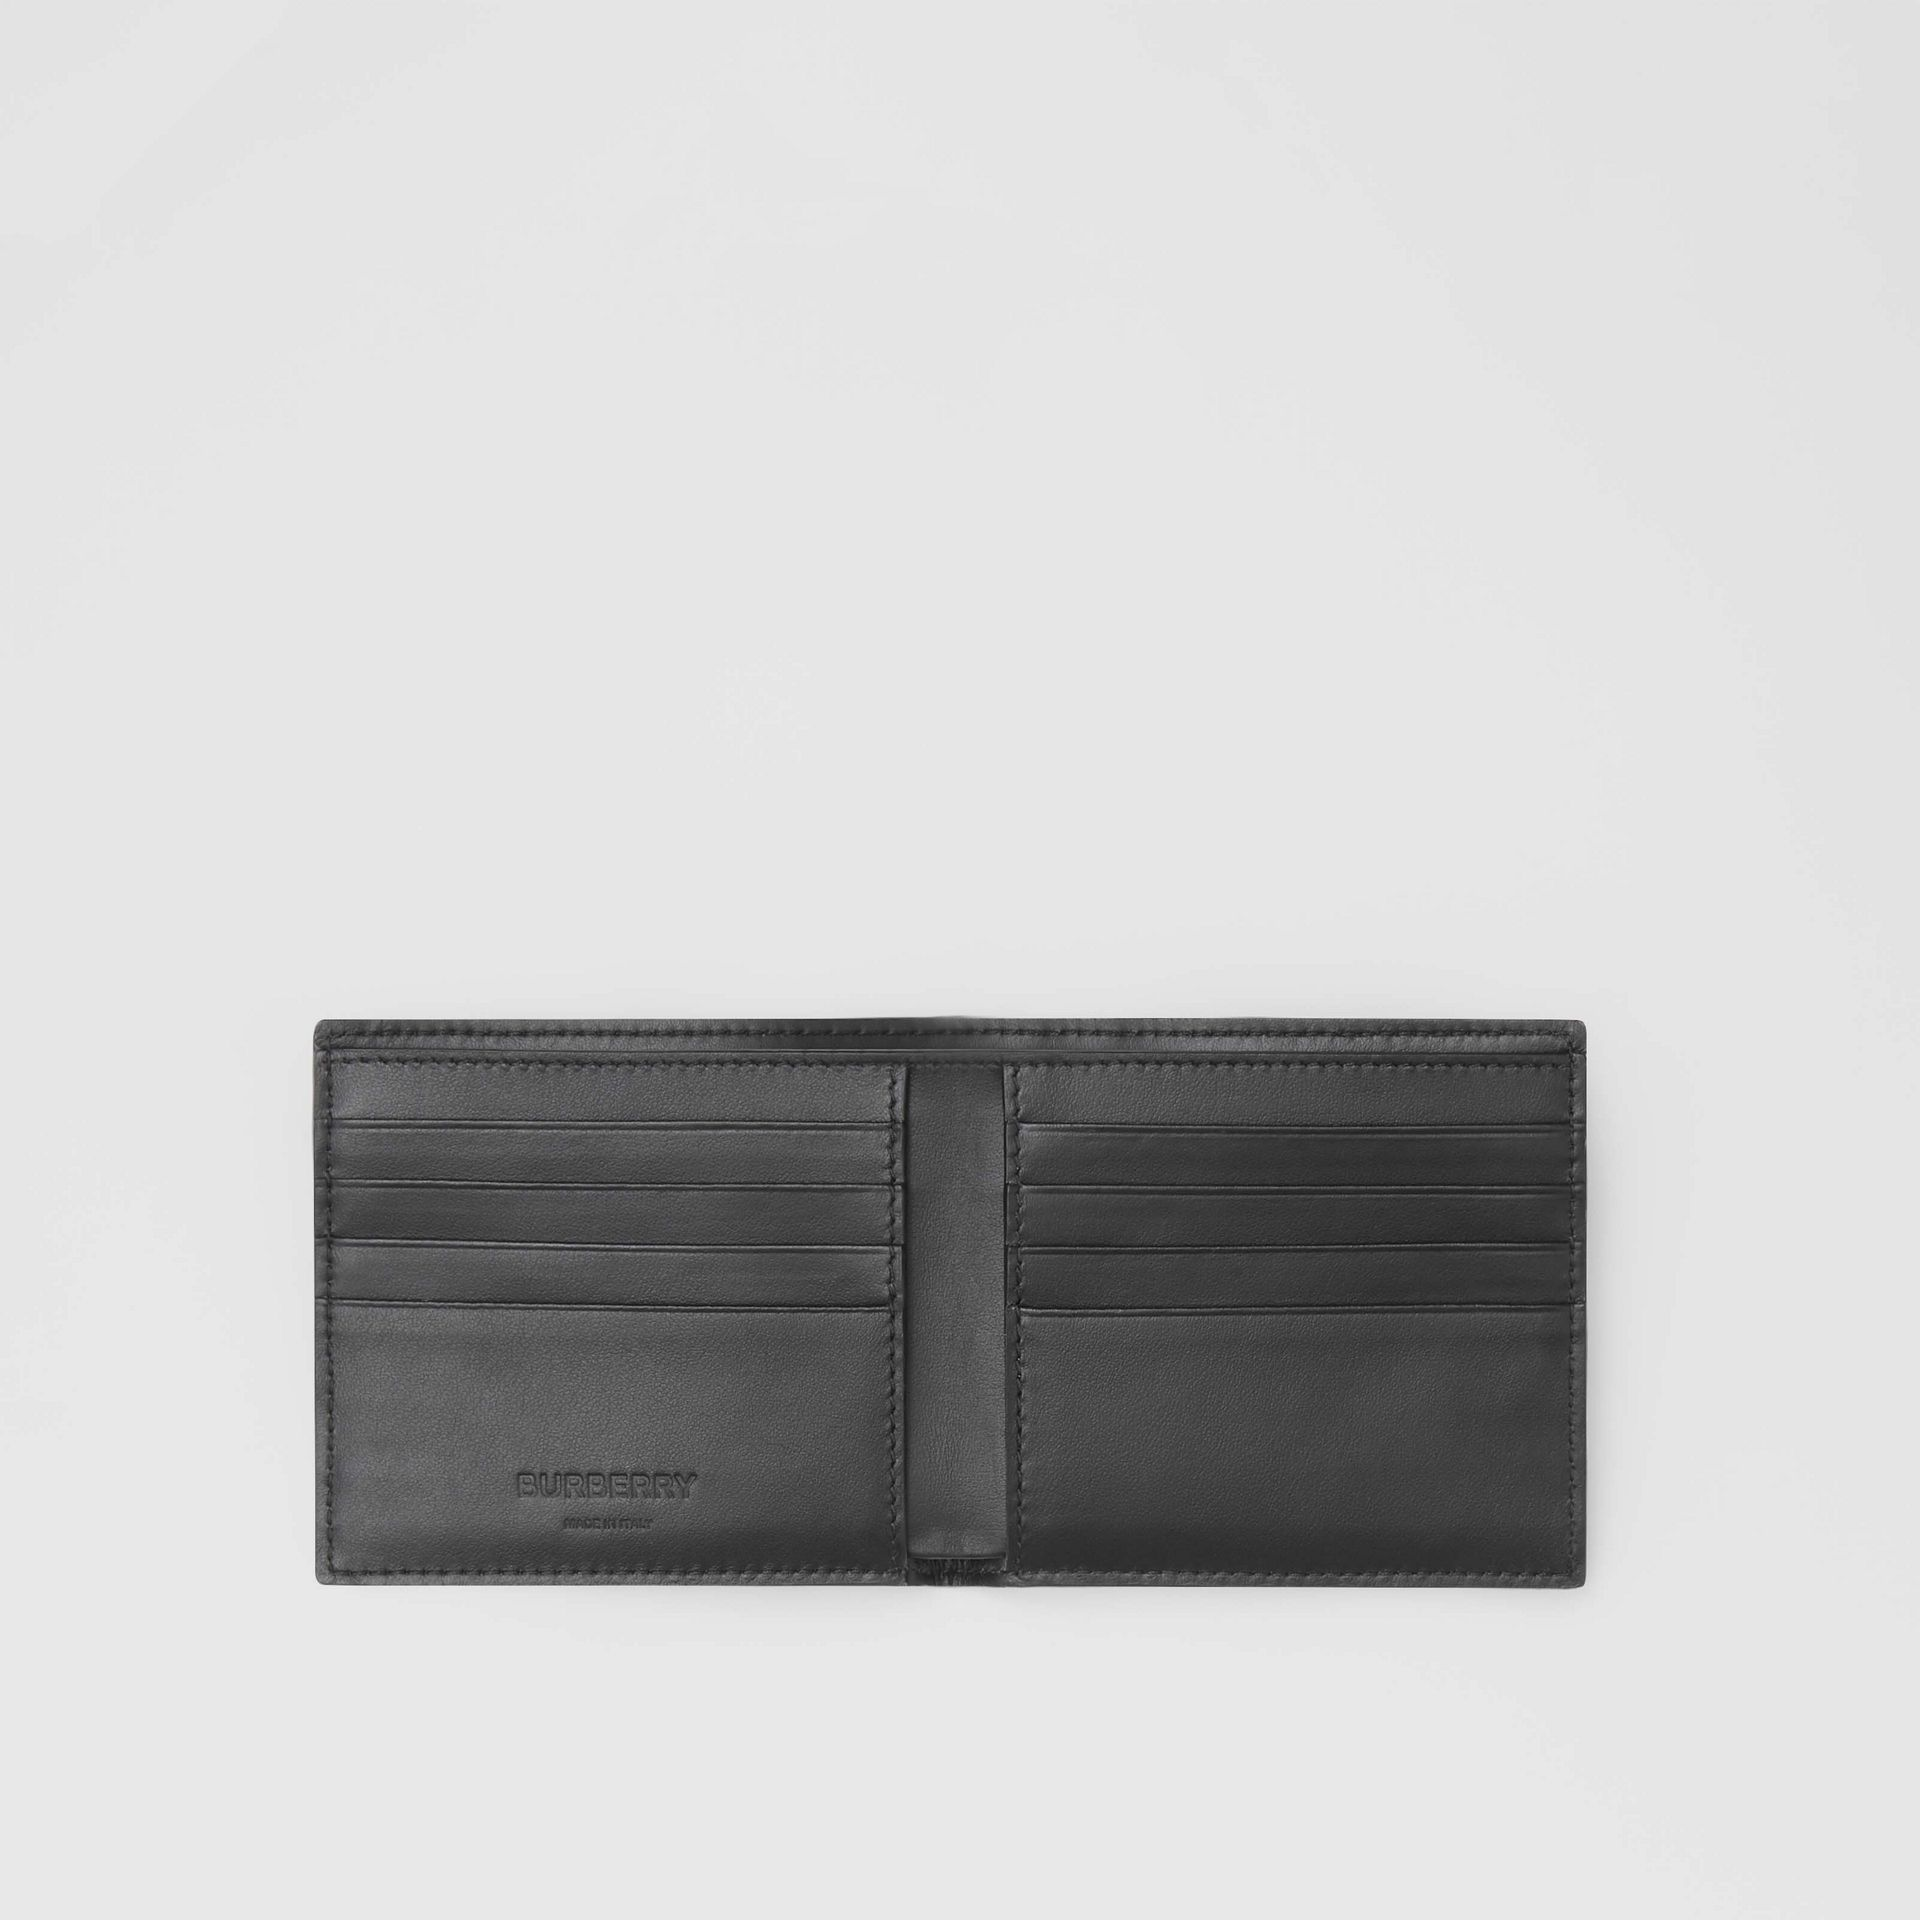 Cow Print Leather International Bifold Wallet in Black/white - Men | Burberry Australia - gallery image 2